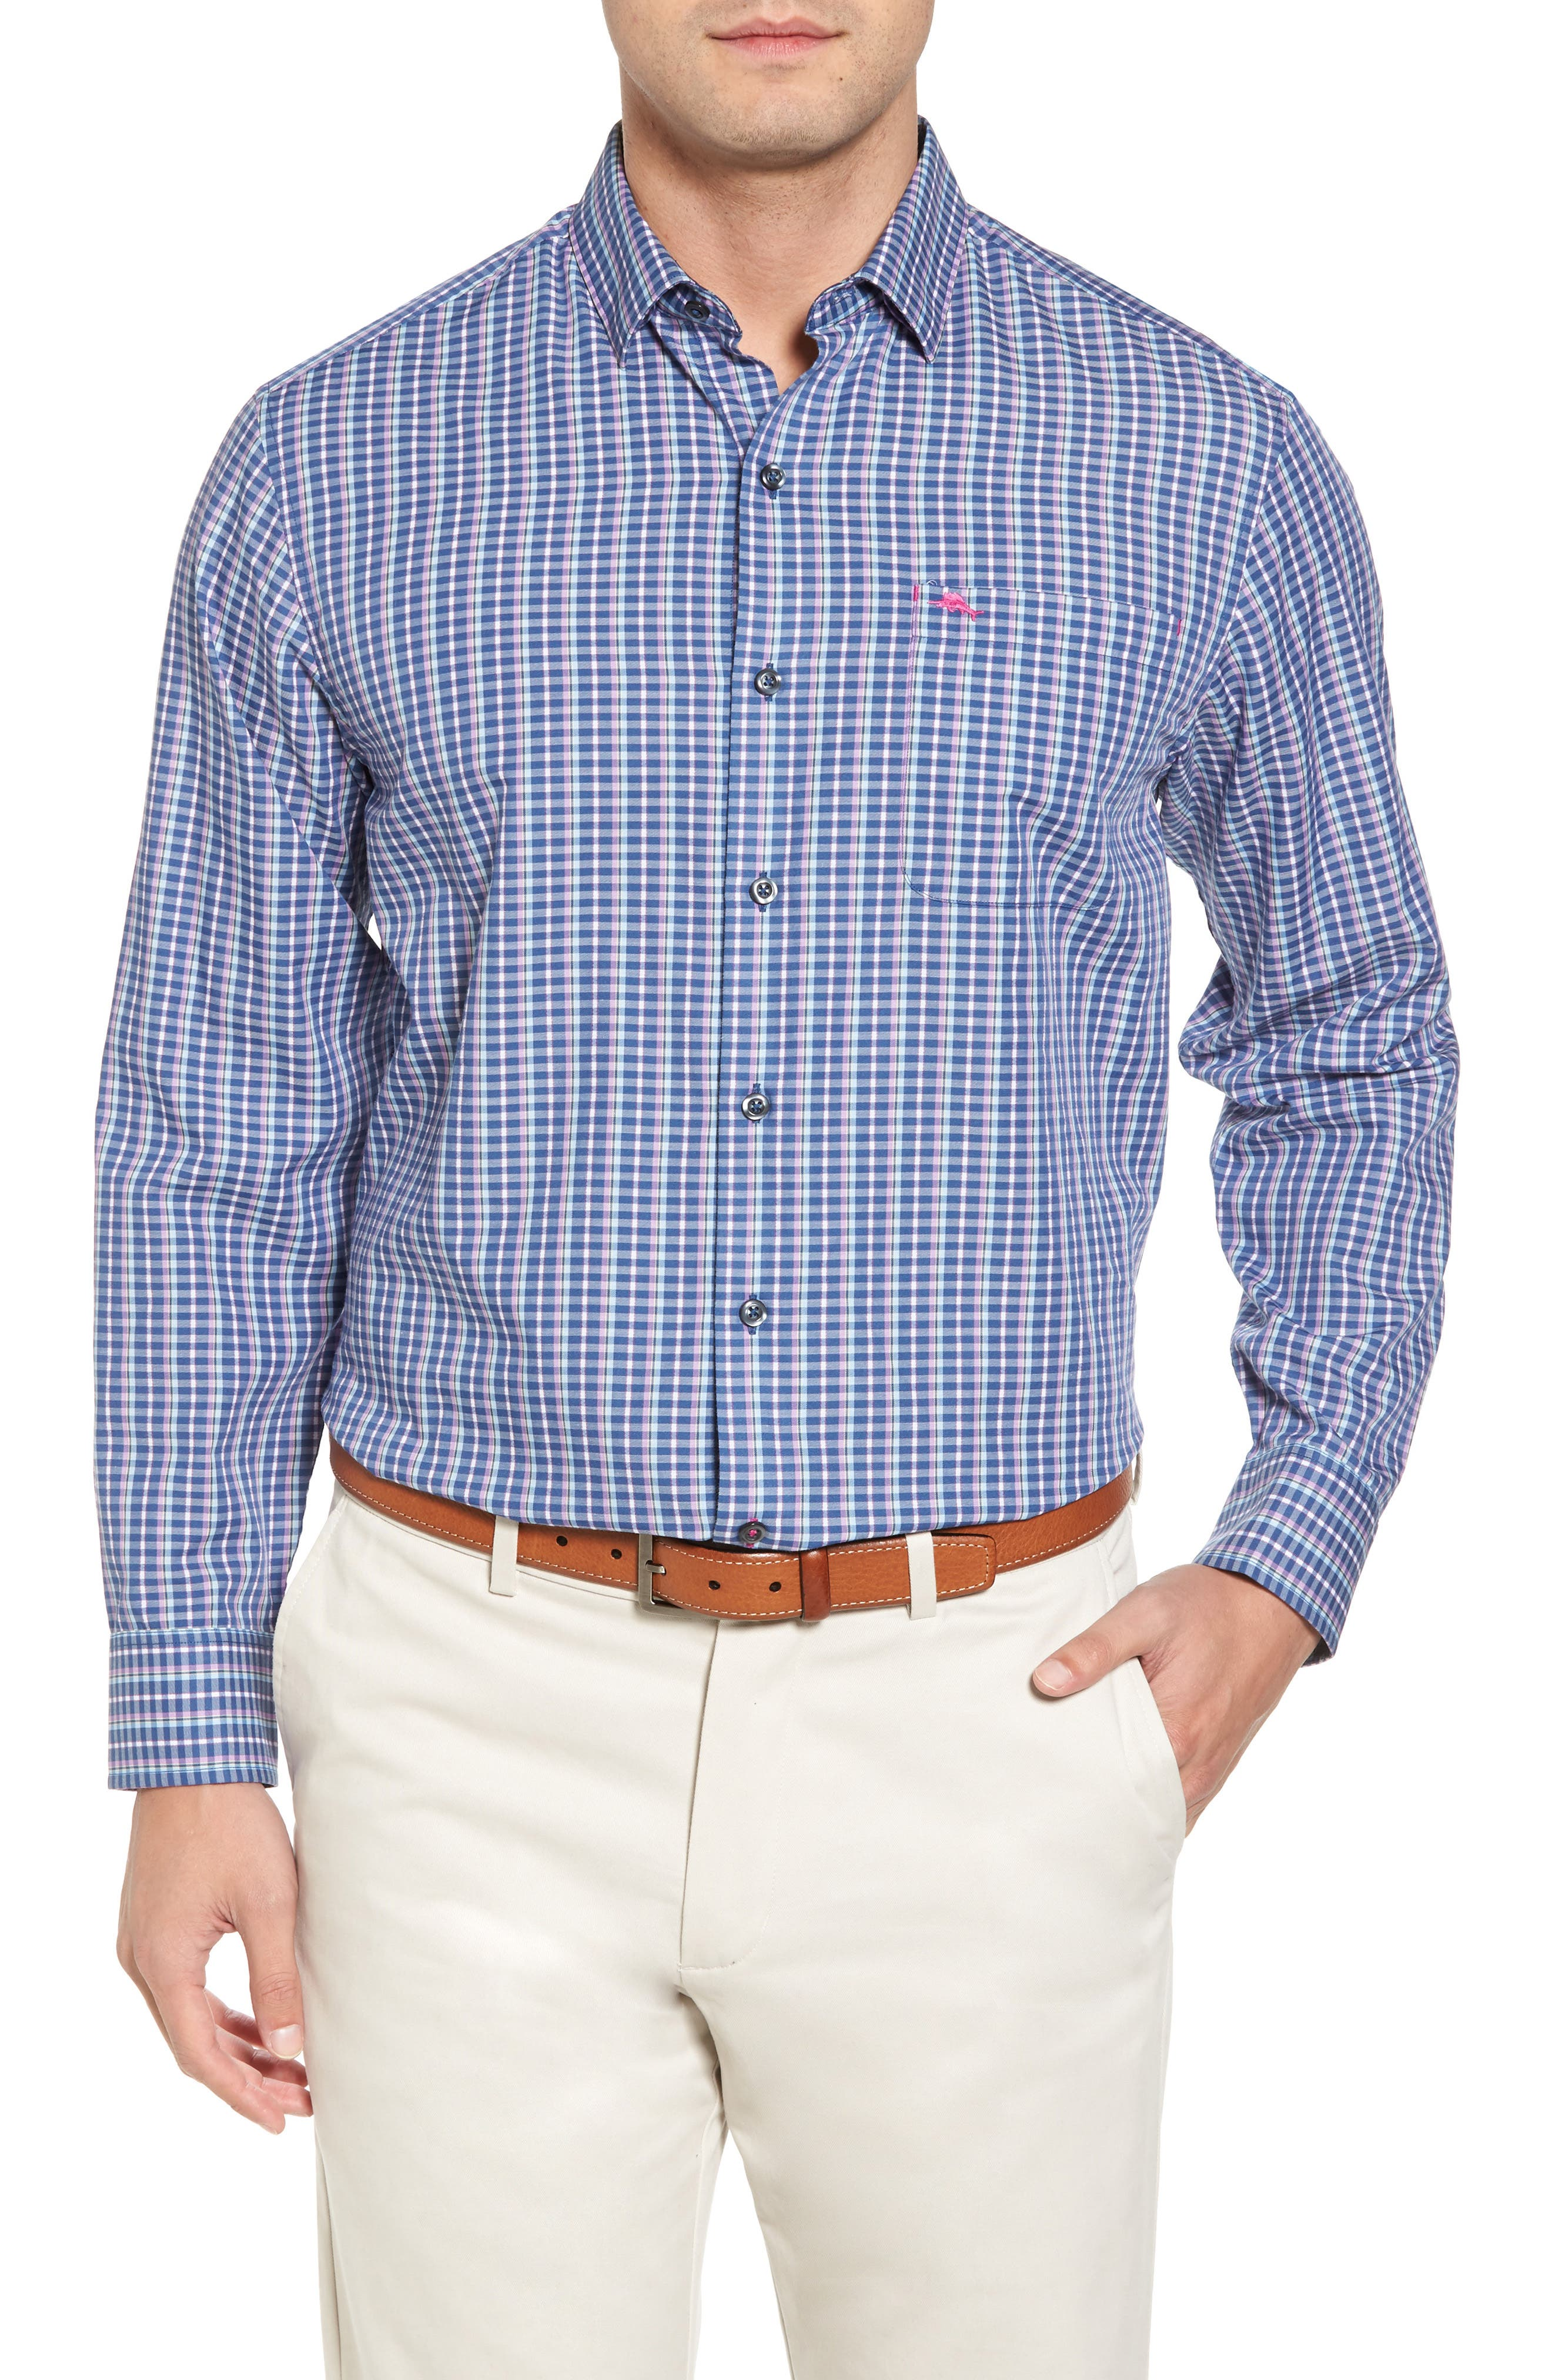 Alternate Image 1 Selected - Tommy Bahama Cypress Cove Classic Fit Plaid Sport Shirt